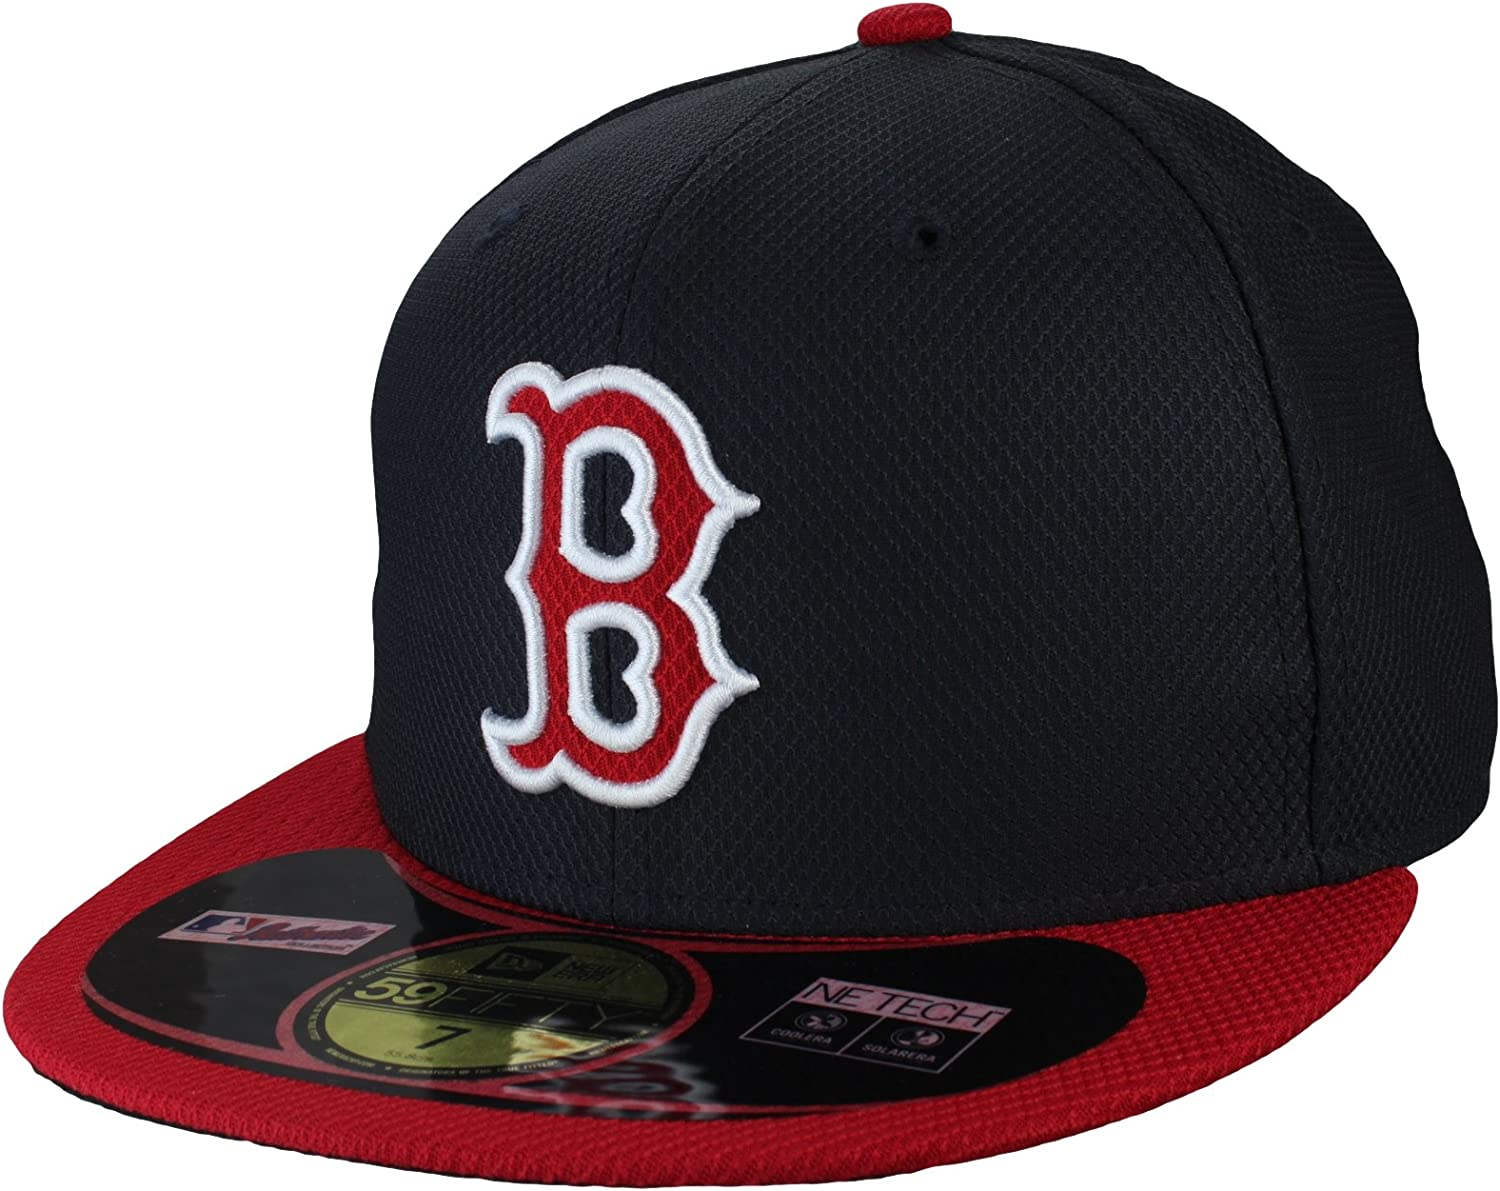 New Era - Gorra de béisbol - para hombre multicolor Boston Red Sox ...